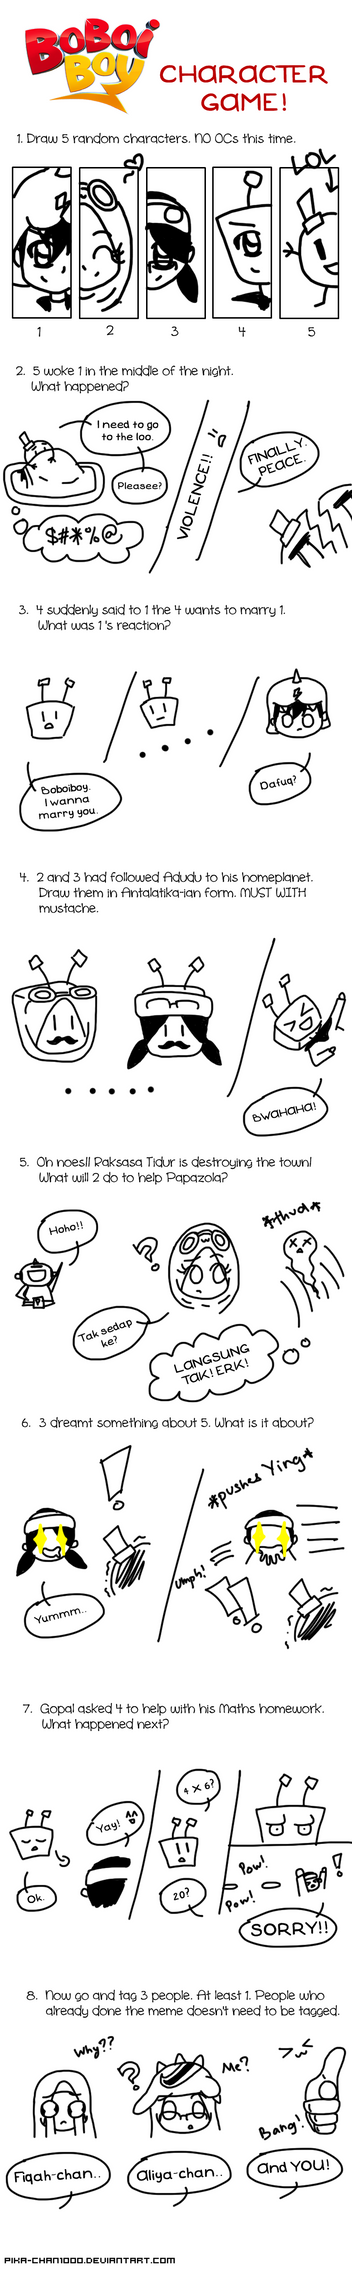 Boboiboy Character Game [Done] by nuazka